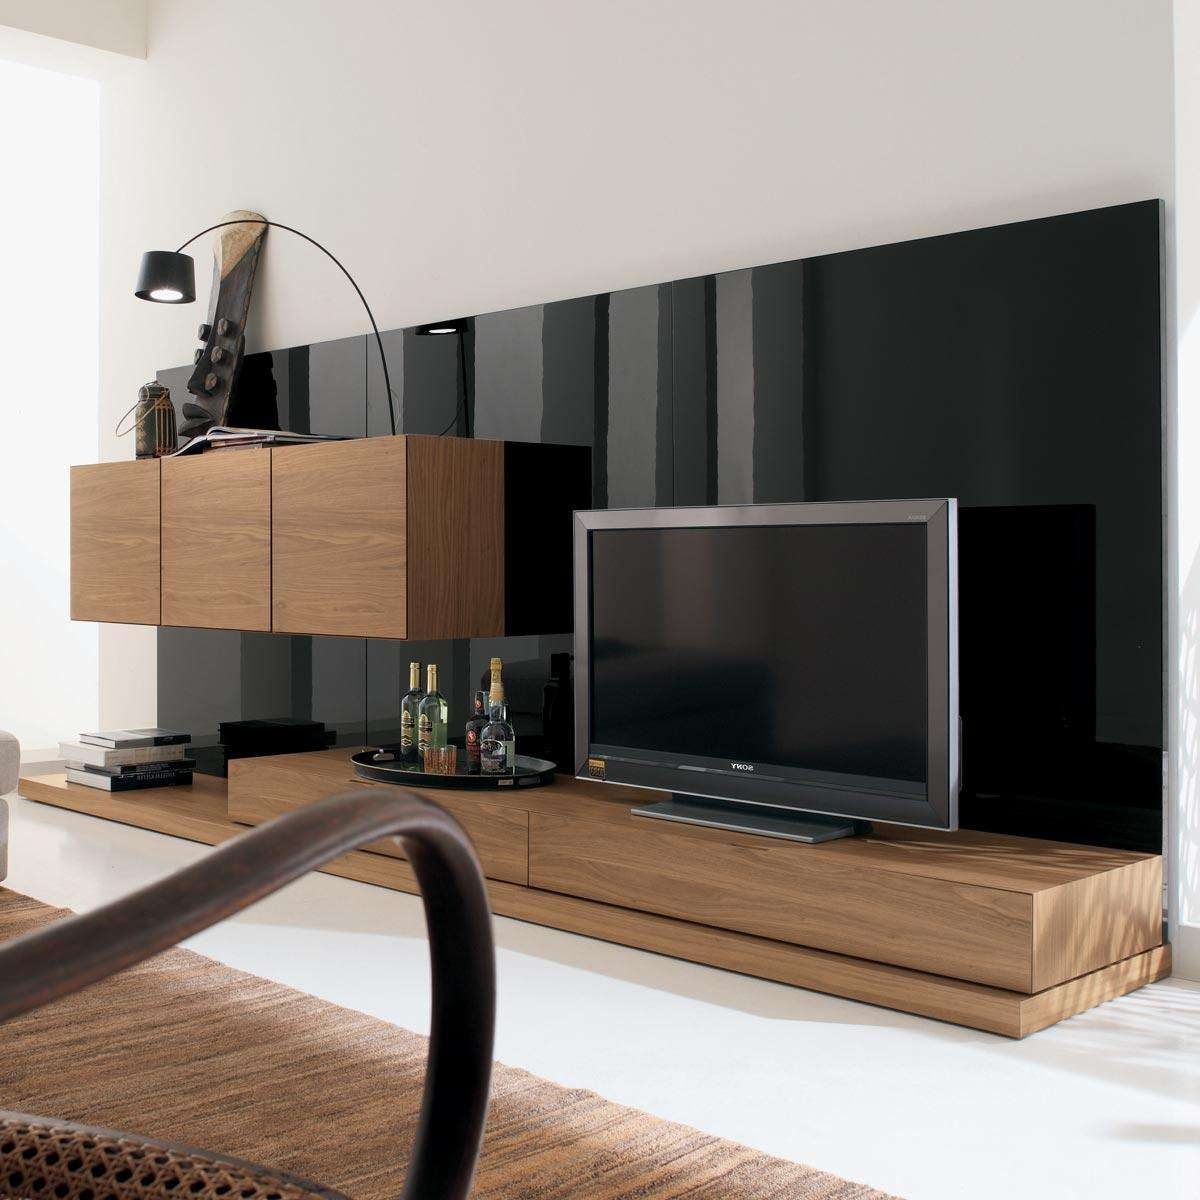 Modern Nature Wood Big Screen Tv Stand Wall Mounted Living Room Regarding Long Low Tv Stands (View 2 of 15)